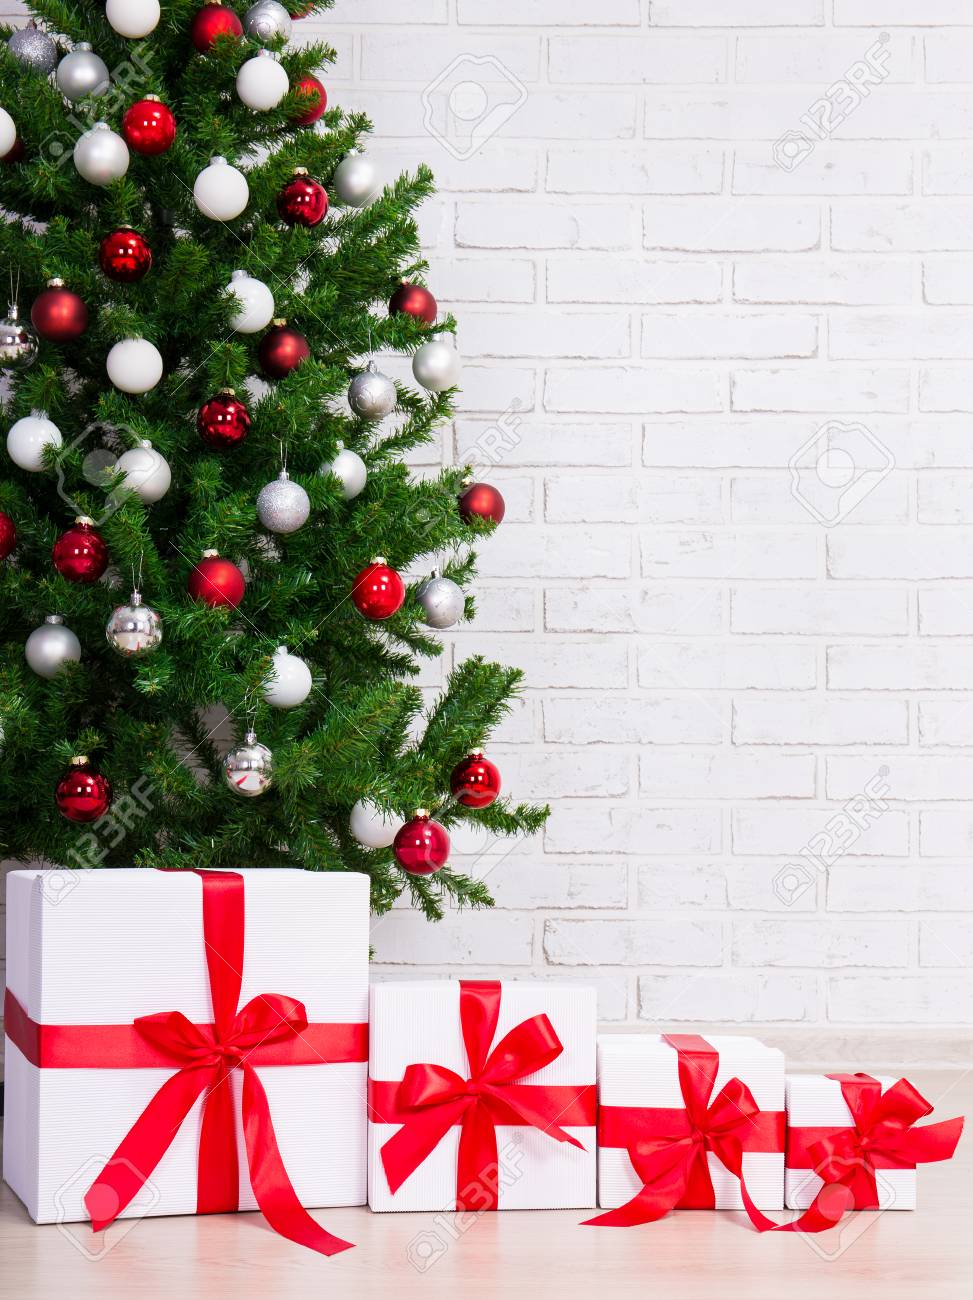 christmas background gift boxes under decorated christmas tree over brick wall stock photo 68504146